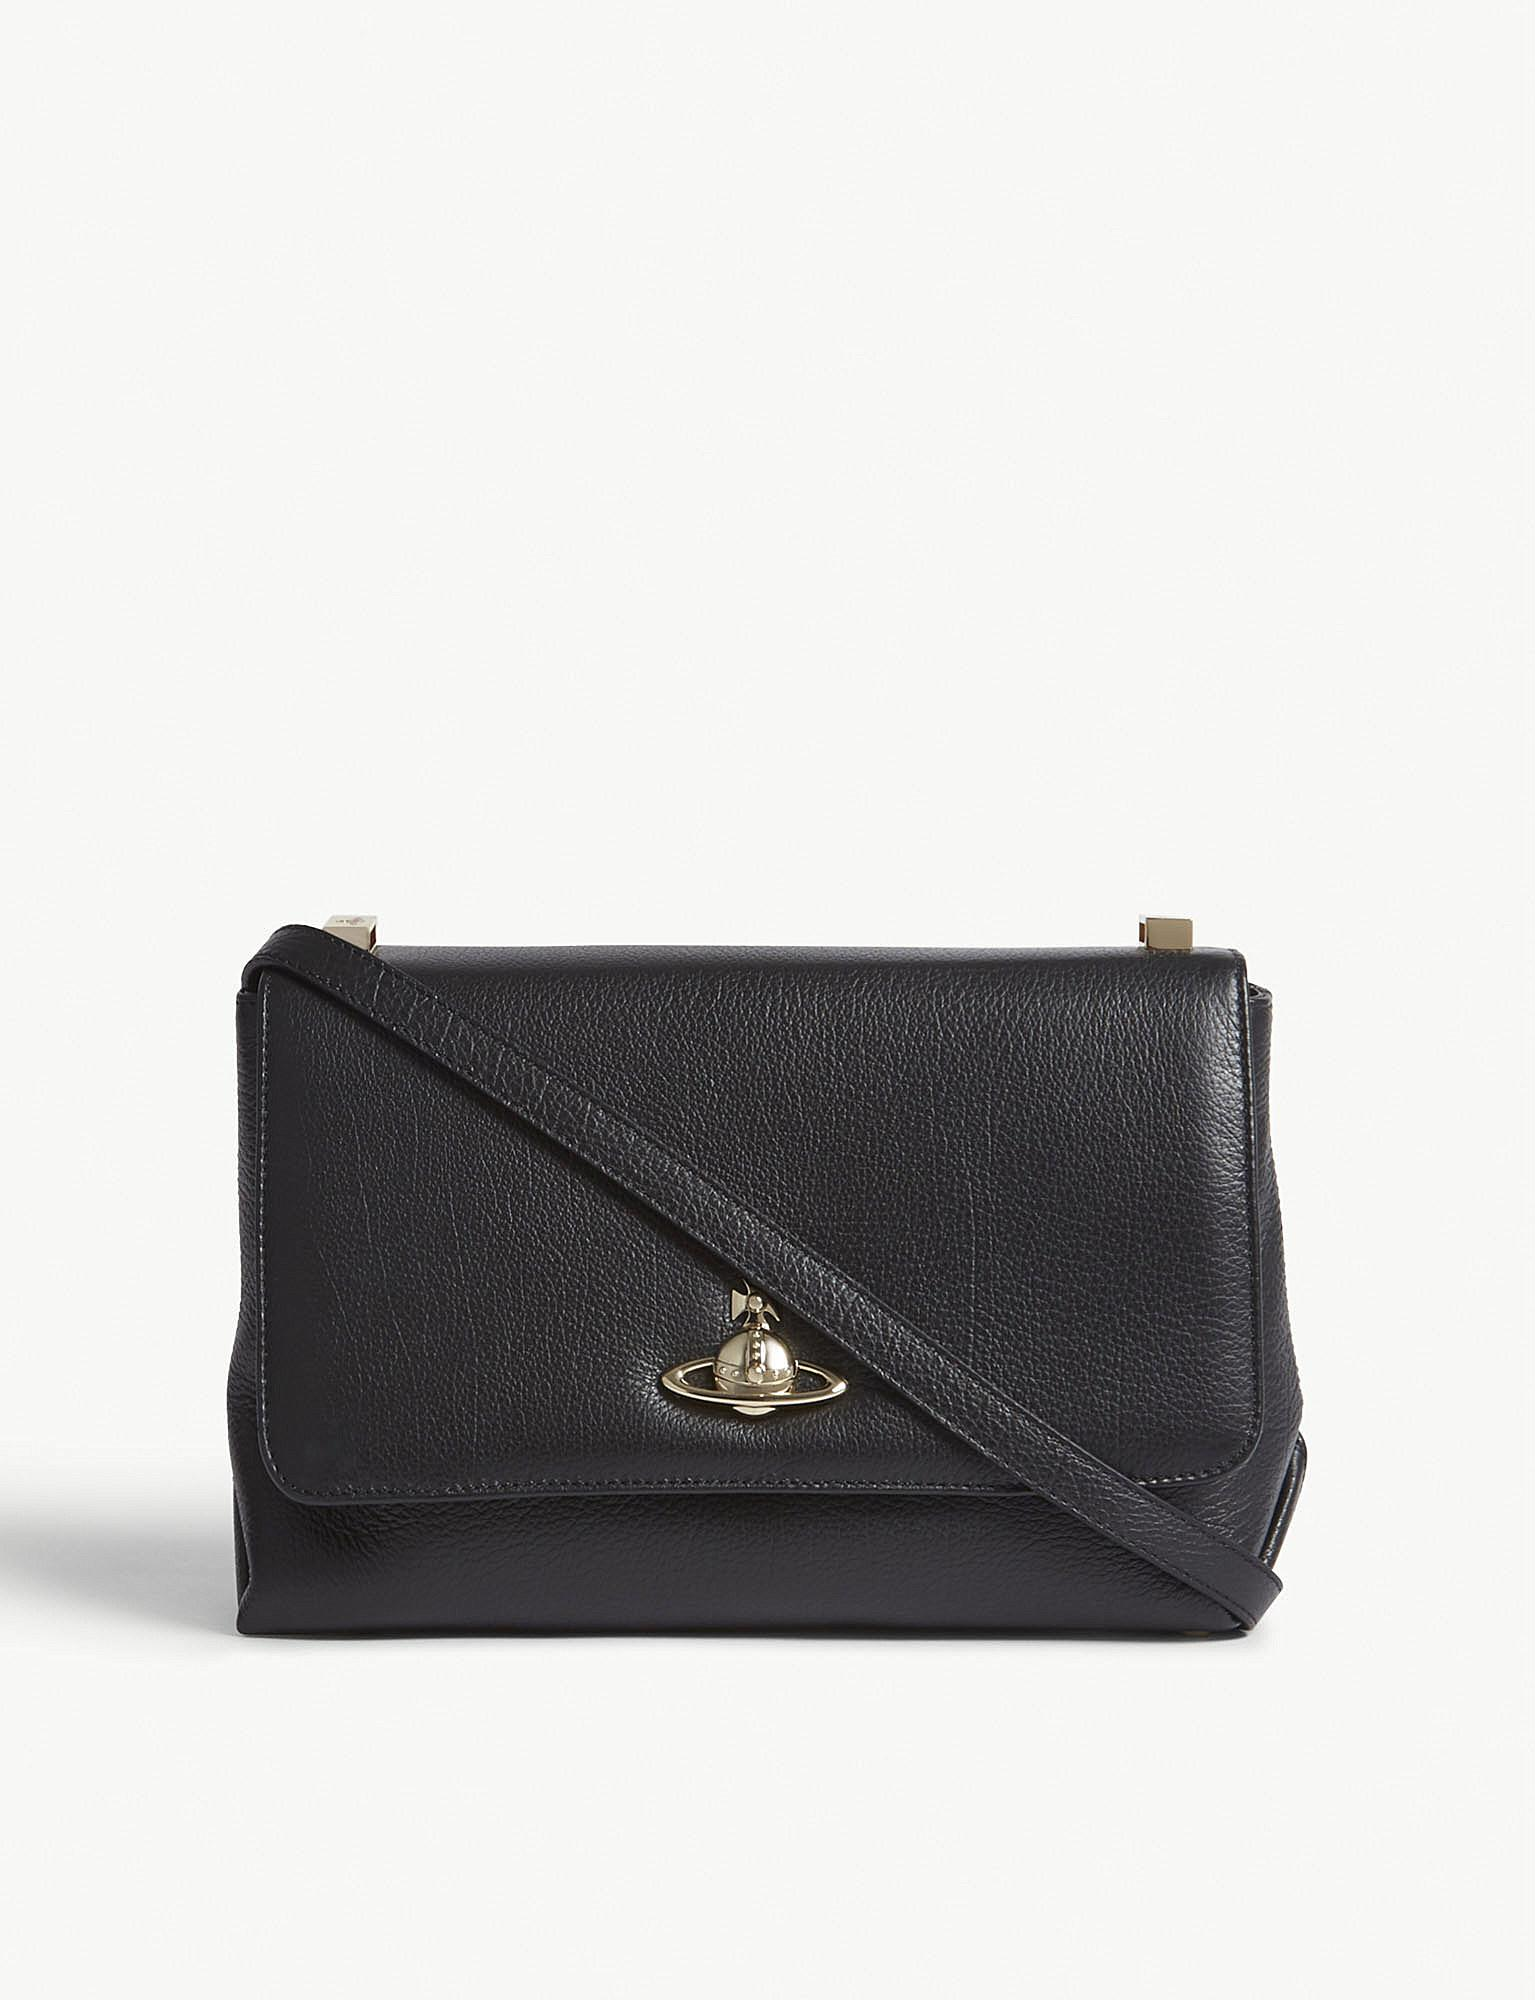 991b60a805 Vivienne Westwood Balmoral Leather Cross-body Bag in Black - Lyst